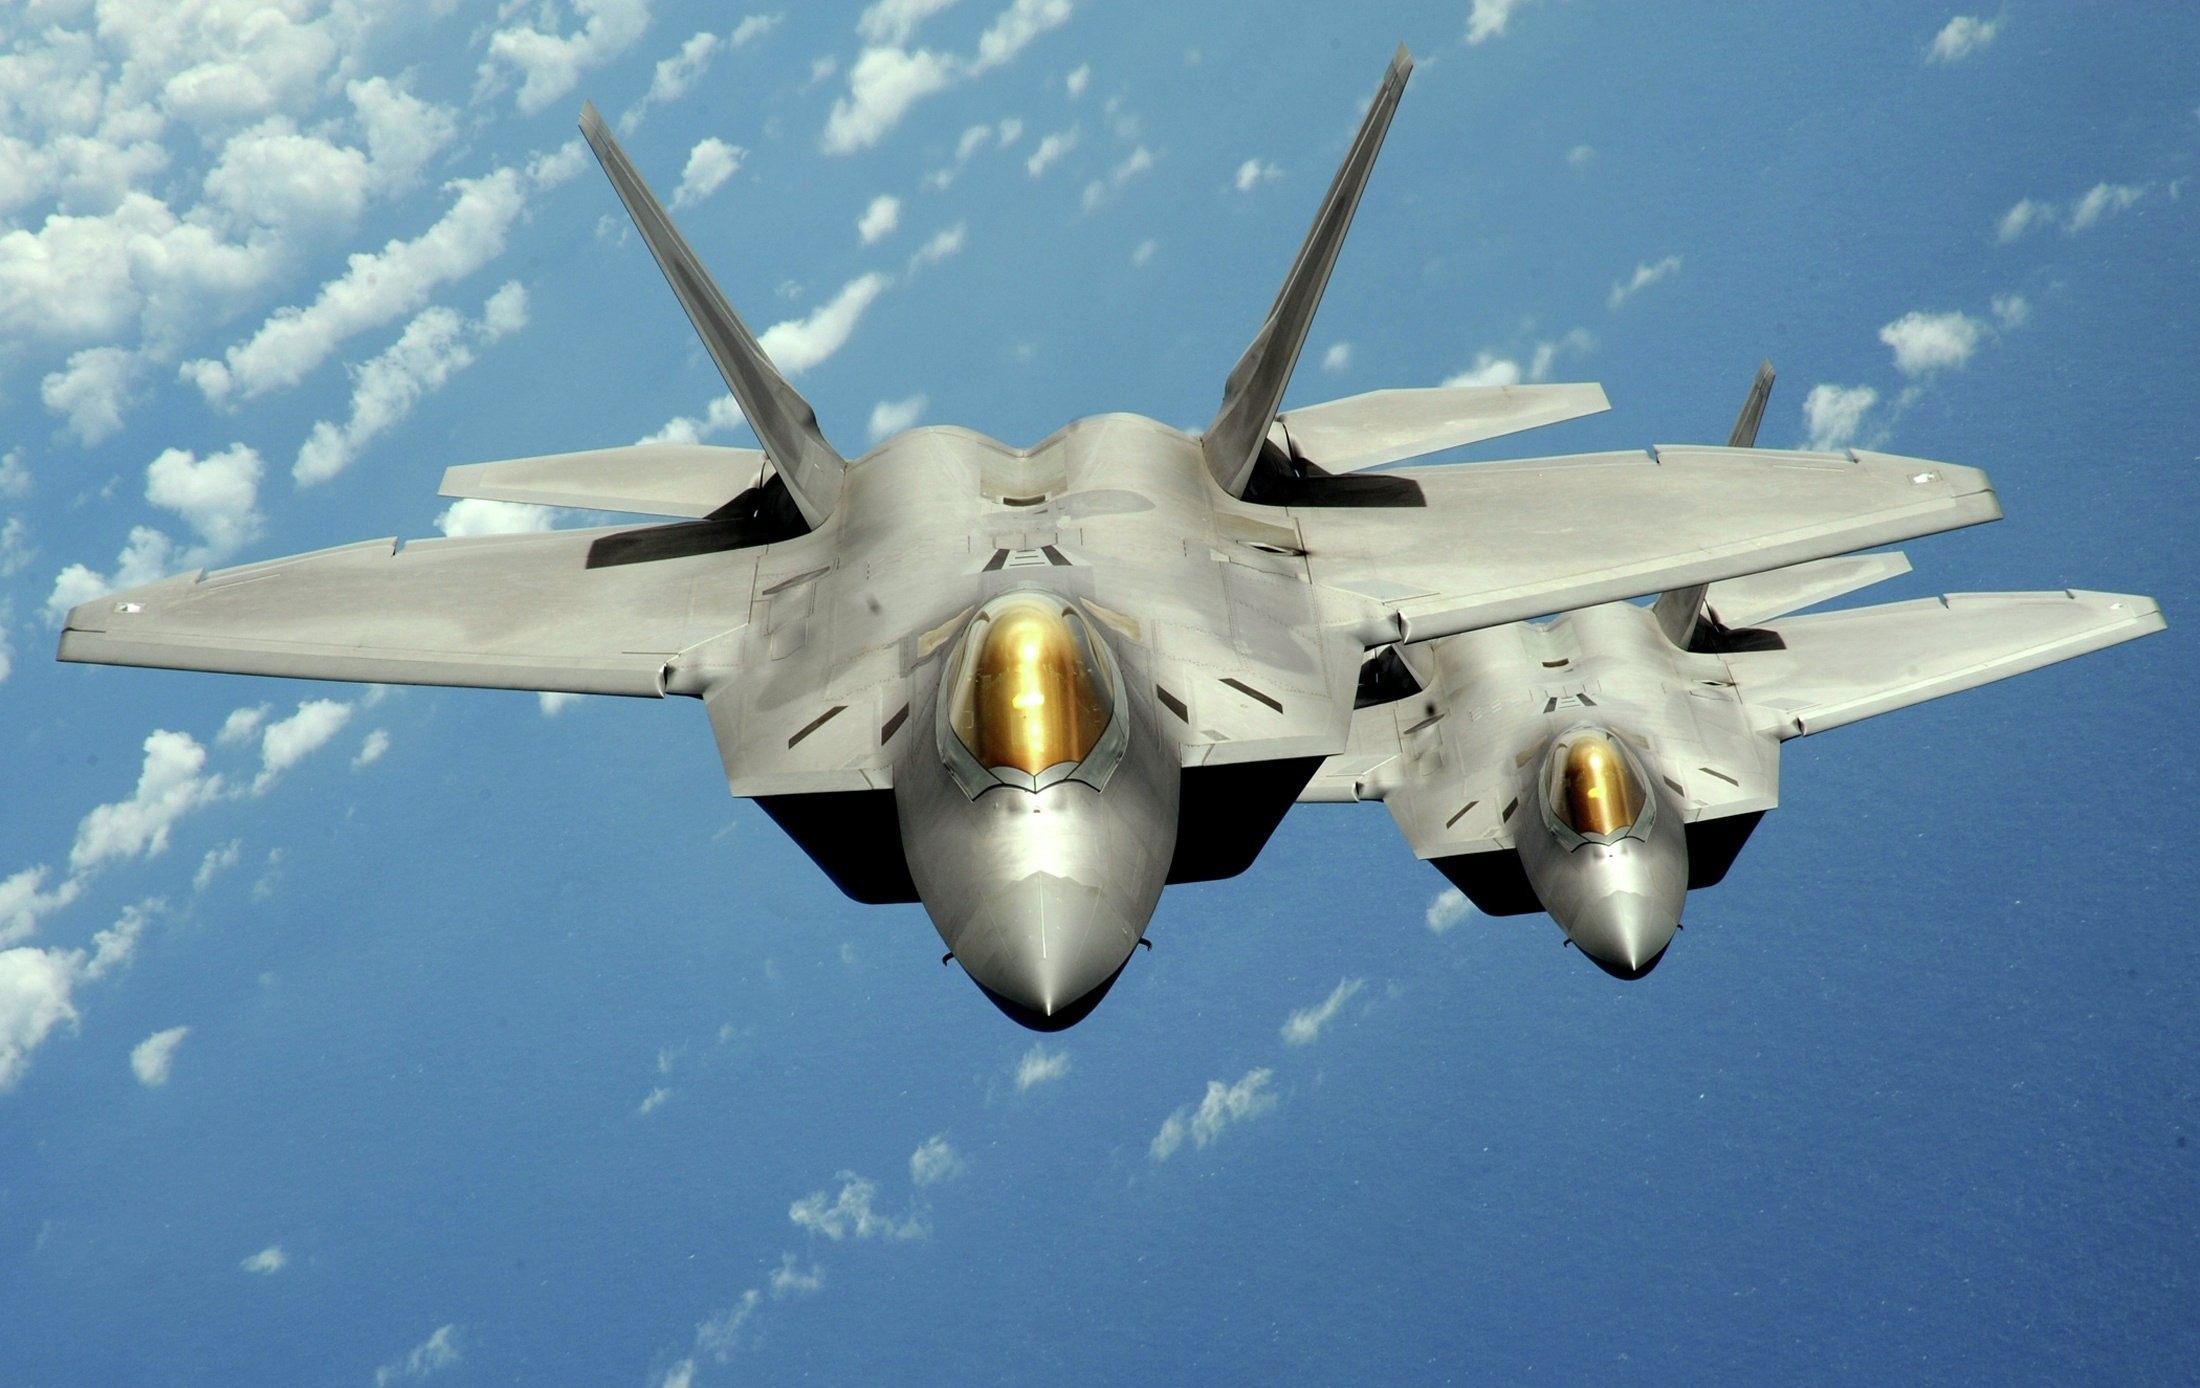 2200x1388 Military - Lockheed Martin F-22 Raptor Jet Fighter Wallpaper